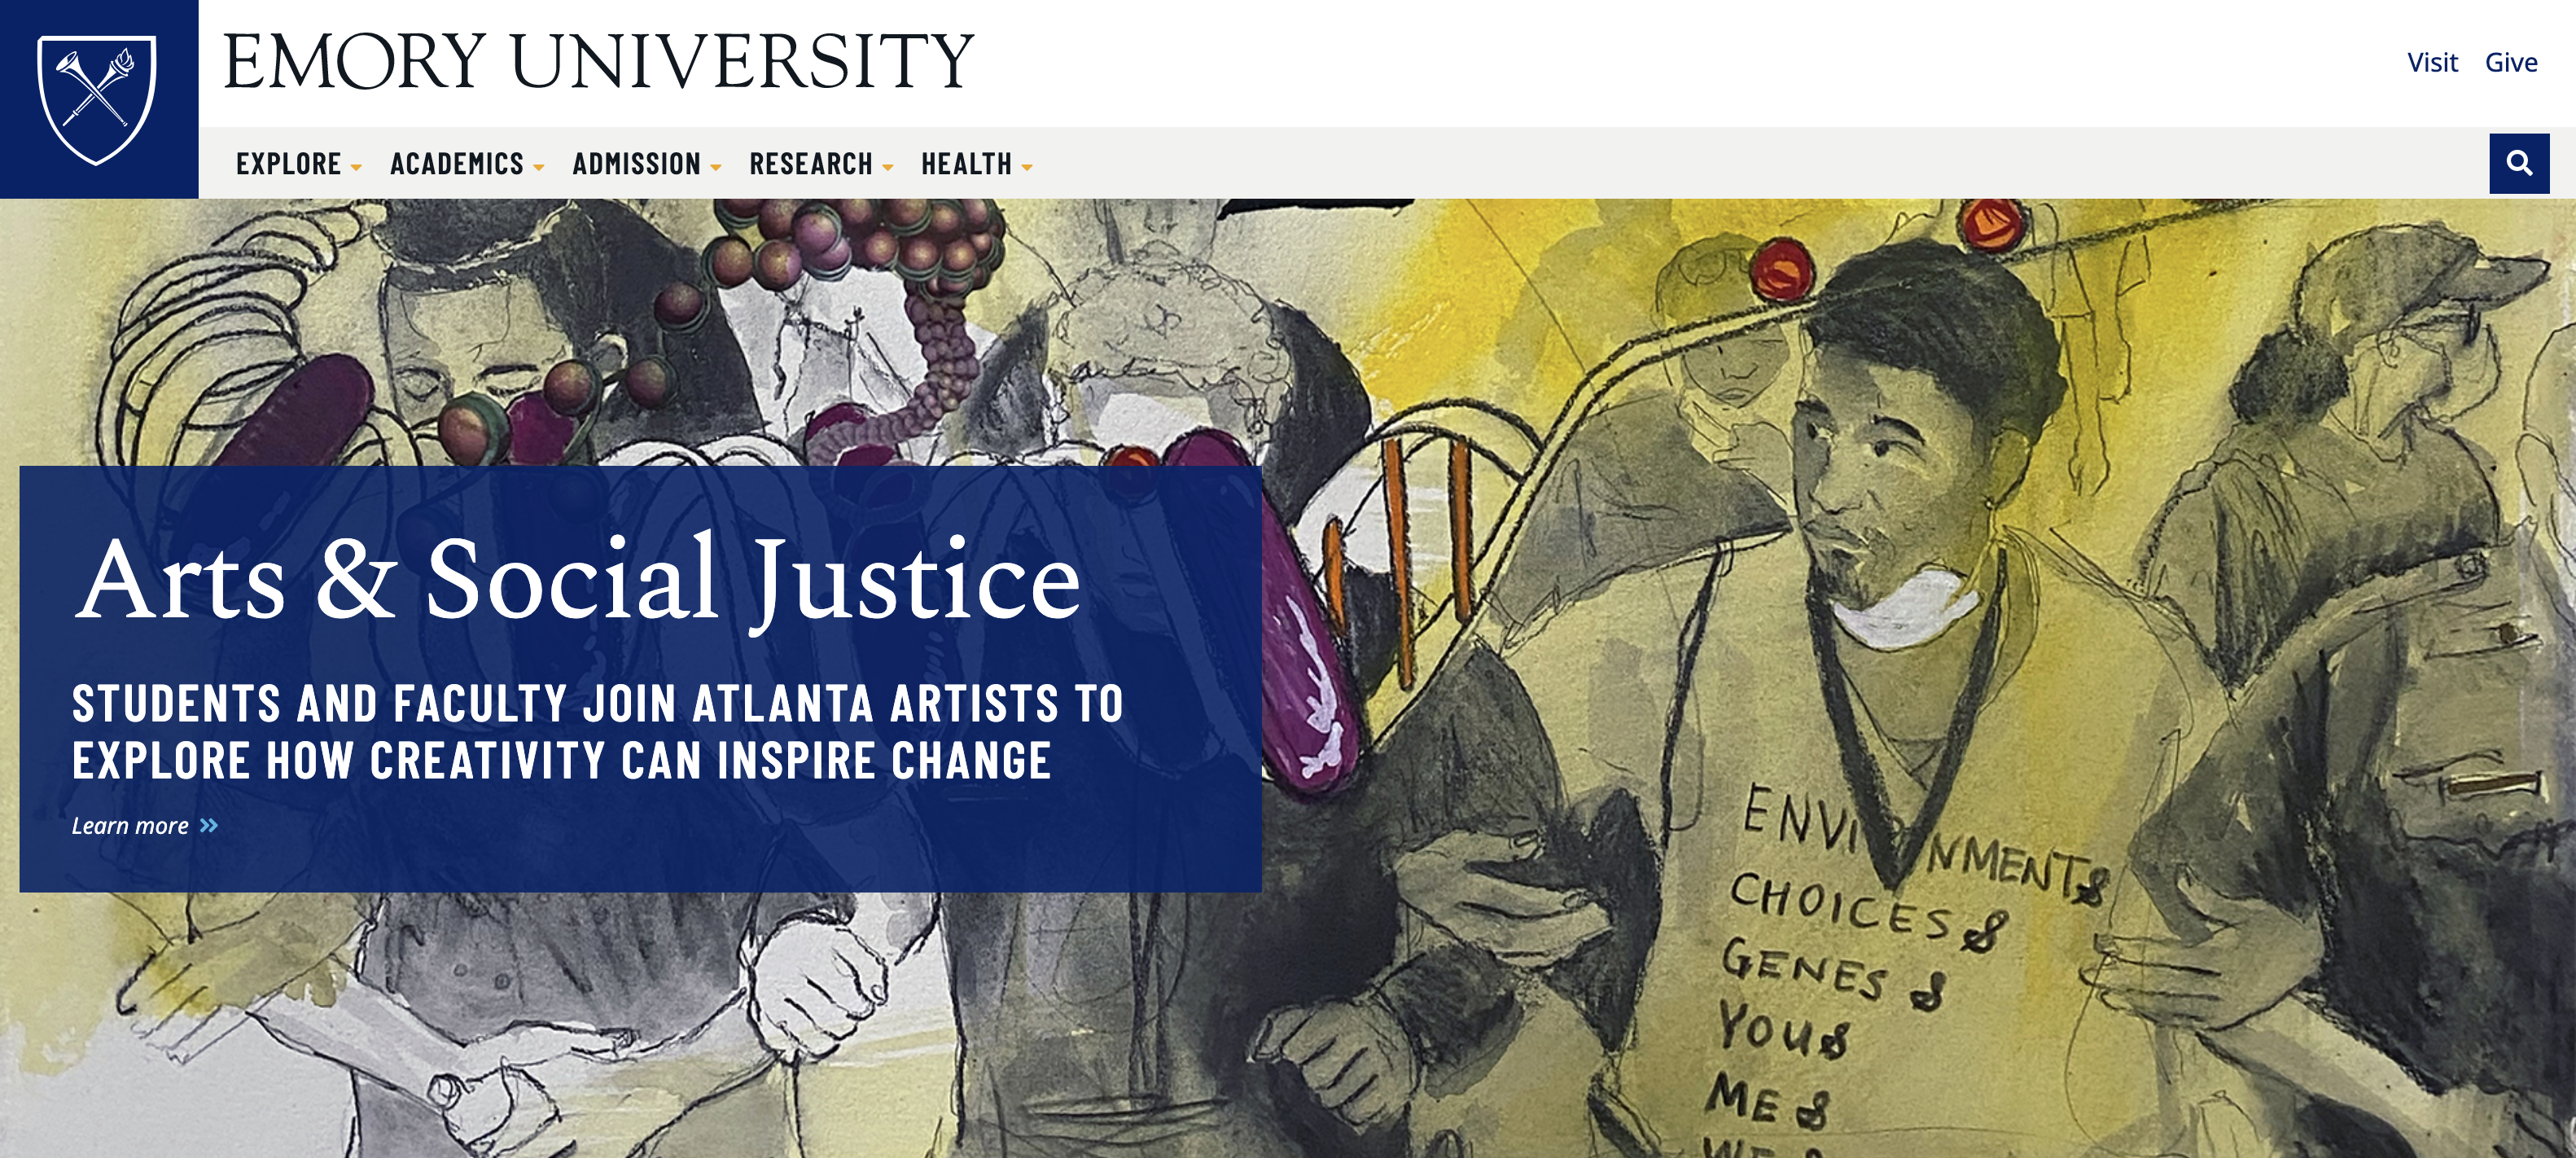 Screenshot of Emory University website homepage, featuring painting by ASJ Fellow Dr. Fahamu Pecou and the article title in white text against a blue rectangular heading